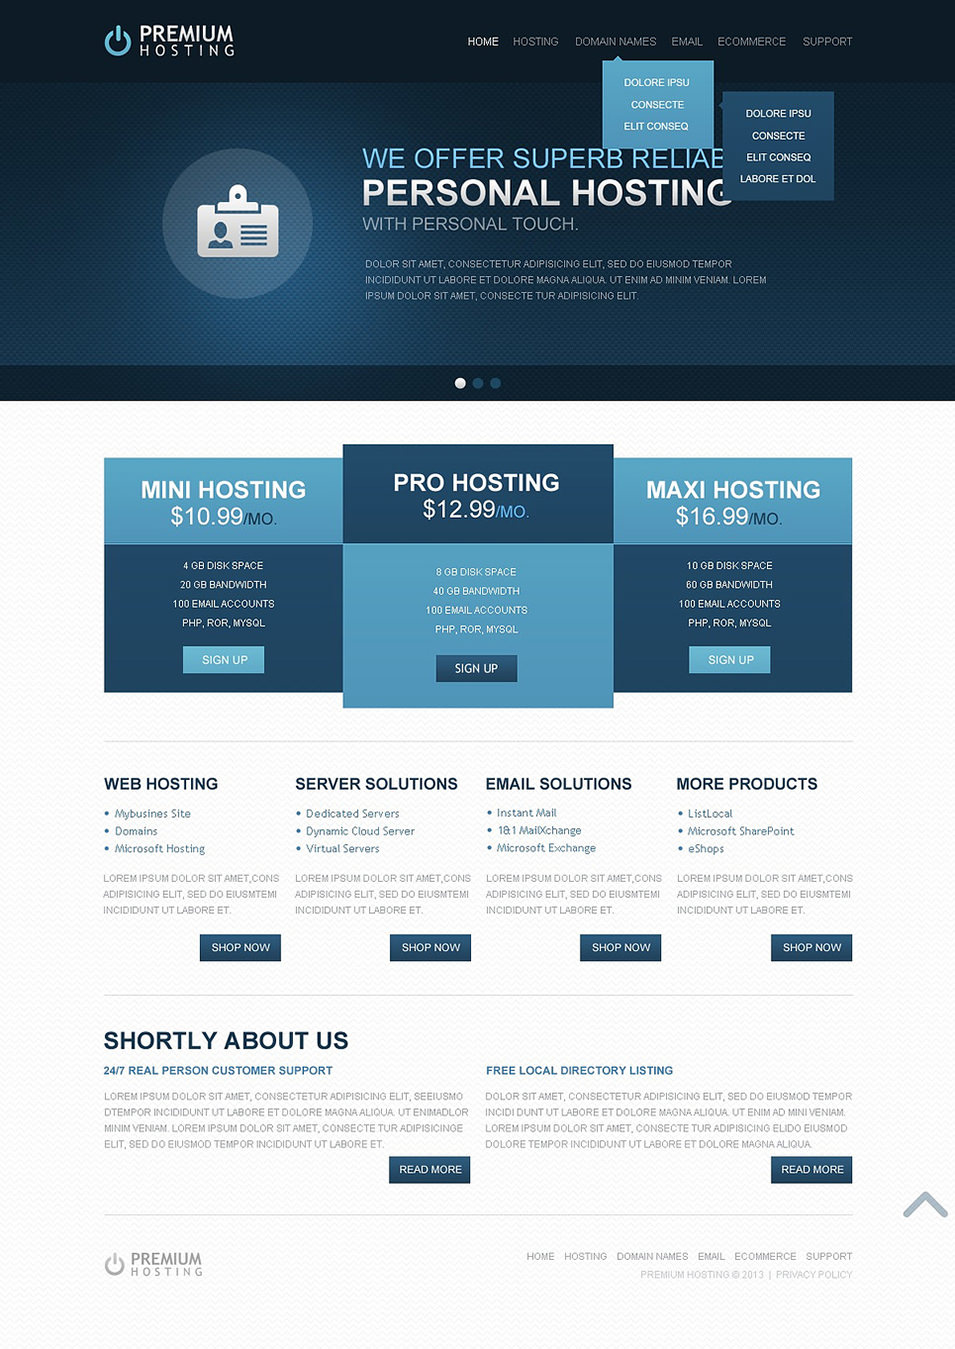 39 Best Web Hosting Website Templates & Themes | Free & Premium